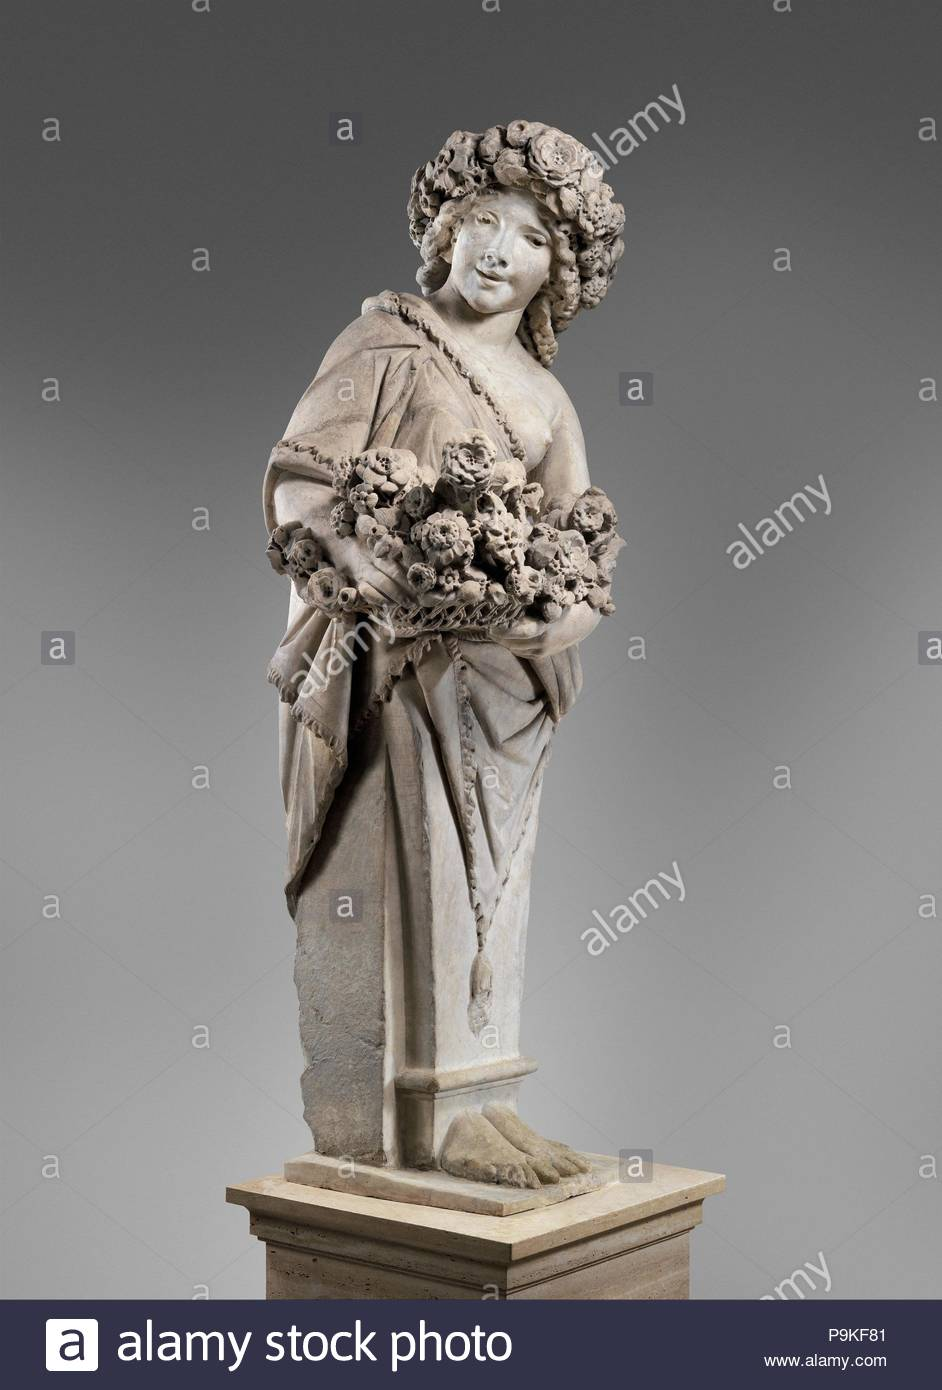 Spring in the guise of Flora (one of a pair), 1616–17, Italian, Rome, Marble, Overall (confirmed): 89 1/8 × 34 3/8 × 27 1/2 in., 2507 lb. (226.4 × 87.3 × 69.9 cm, 1137.2 kg), Sculpture, Pietro Bernini (Italian, 1562–1629), Assisted by Gian Lorenzo Bernini (Italian, Naples 1598–1680 Rome), The two terms were made in 1616 by Pietro Bernini (1562–1629) with the assistance of his more famous son, the sculptor Gian Lorenzo Bernini (1598–1680), for Cardinal Scipione Borghese. Each consisting of a half-body merging into a tapering pedestal, they originally stood in the gardens of the Villa Borghese i - Stock Image